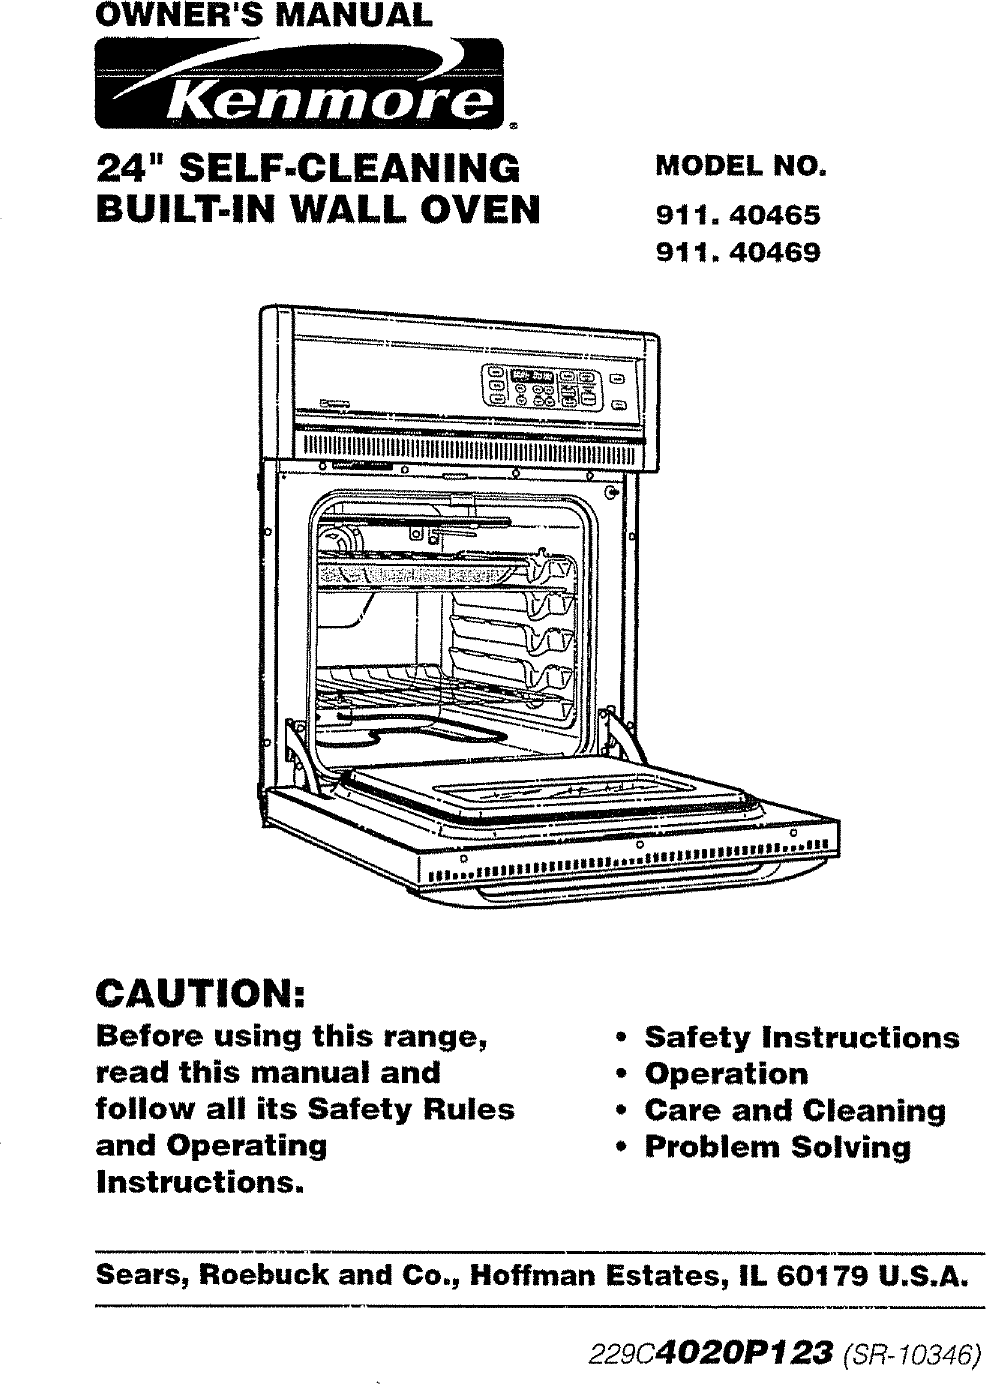 kenmore built in oven manual